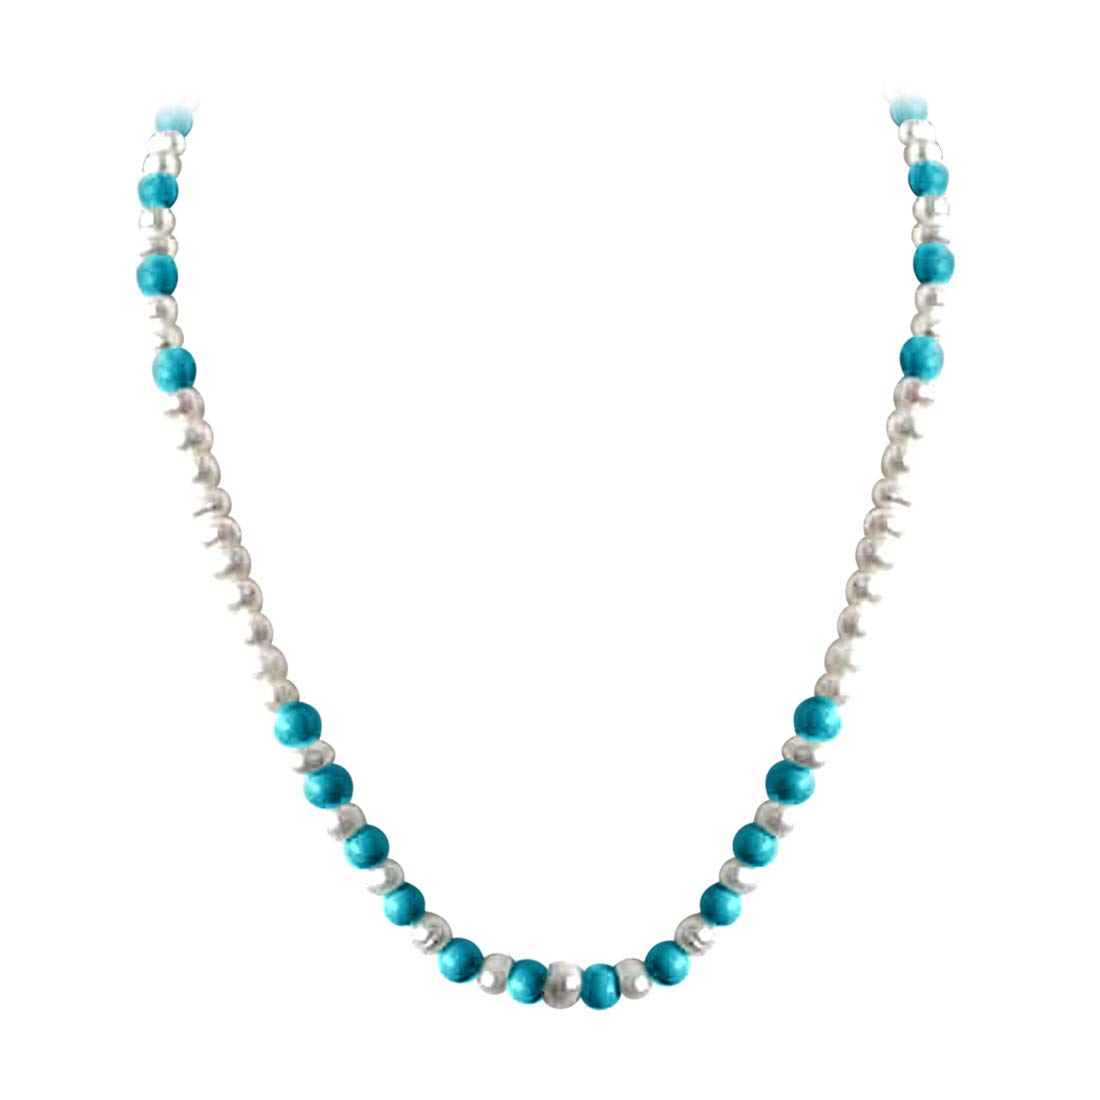 Beautiful Intoxication - Single Line Real Freshwater Pearl & Turquoise Beads Necklace for Women (SN22)